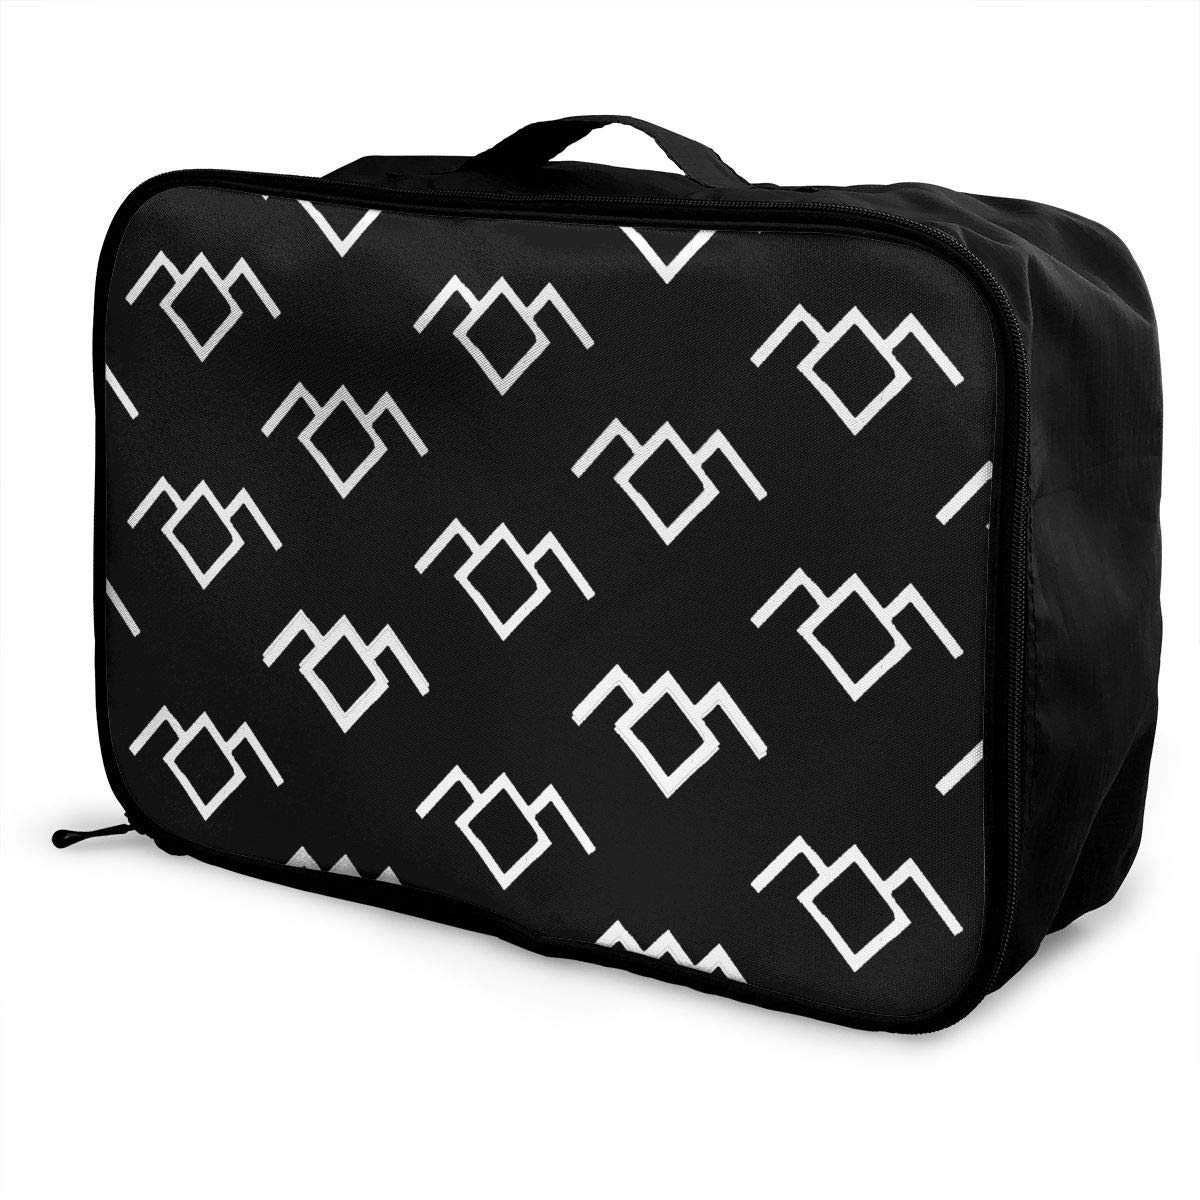 Lightweight Large Capacity Duffel Portable Luggage Bag Cool Black Patterns Travel Waterproof Foldable Storage Carry Tote Bag